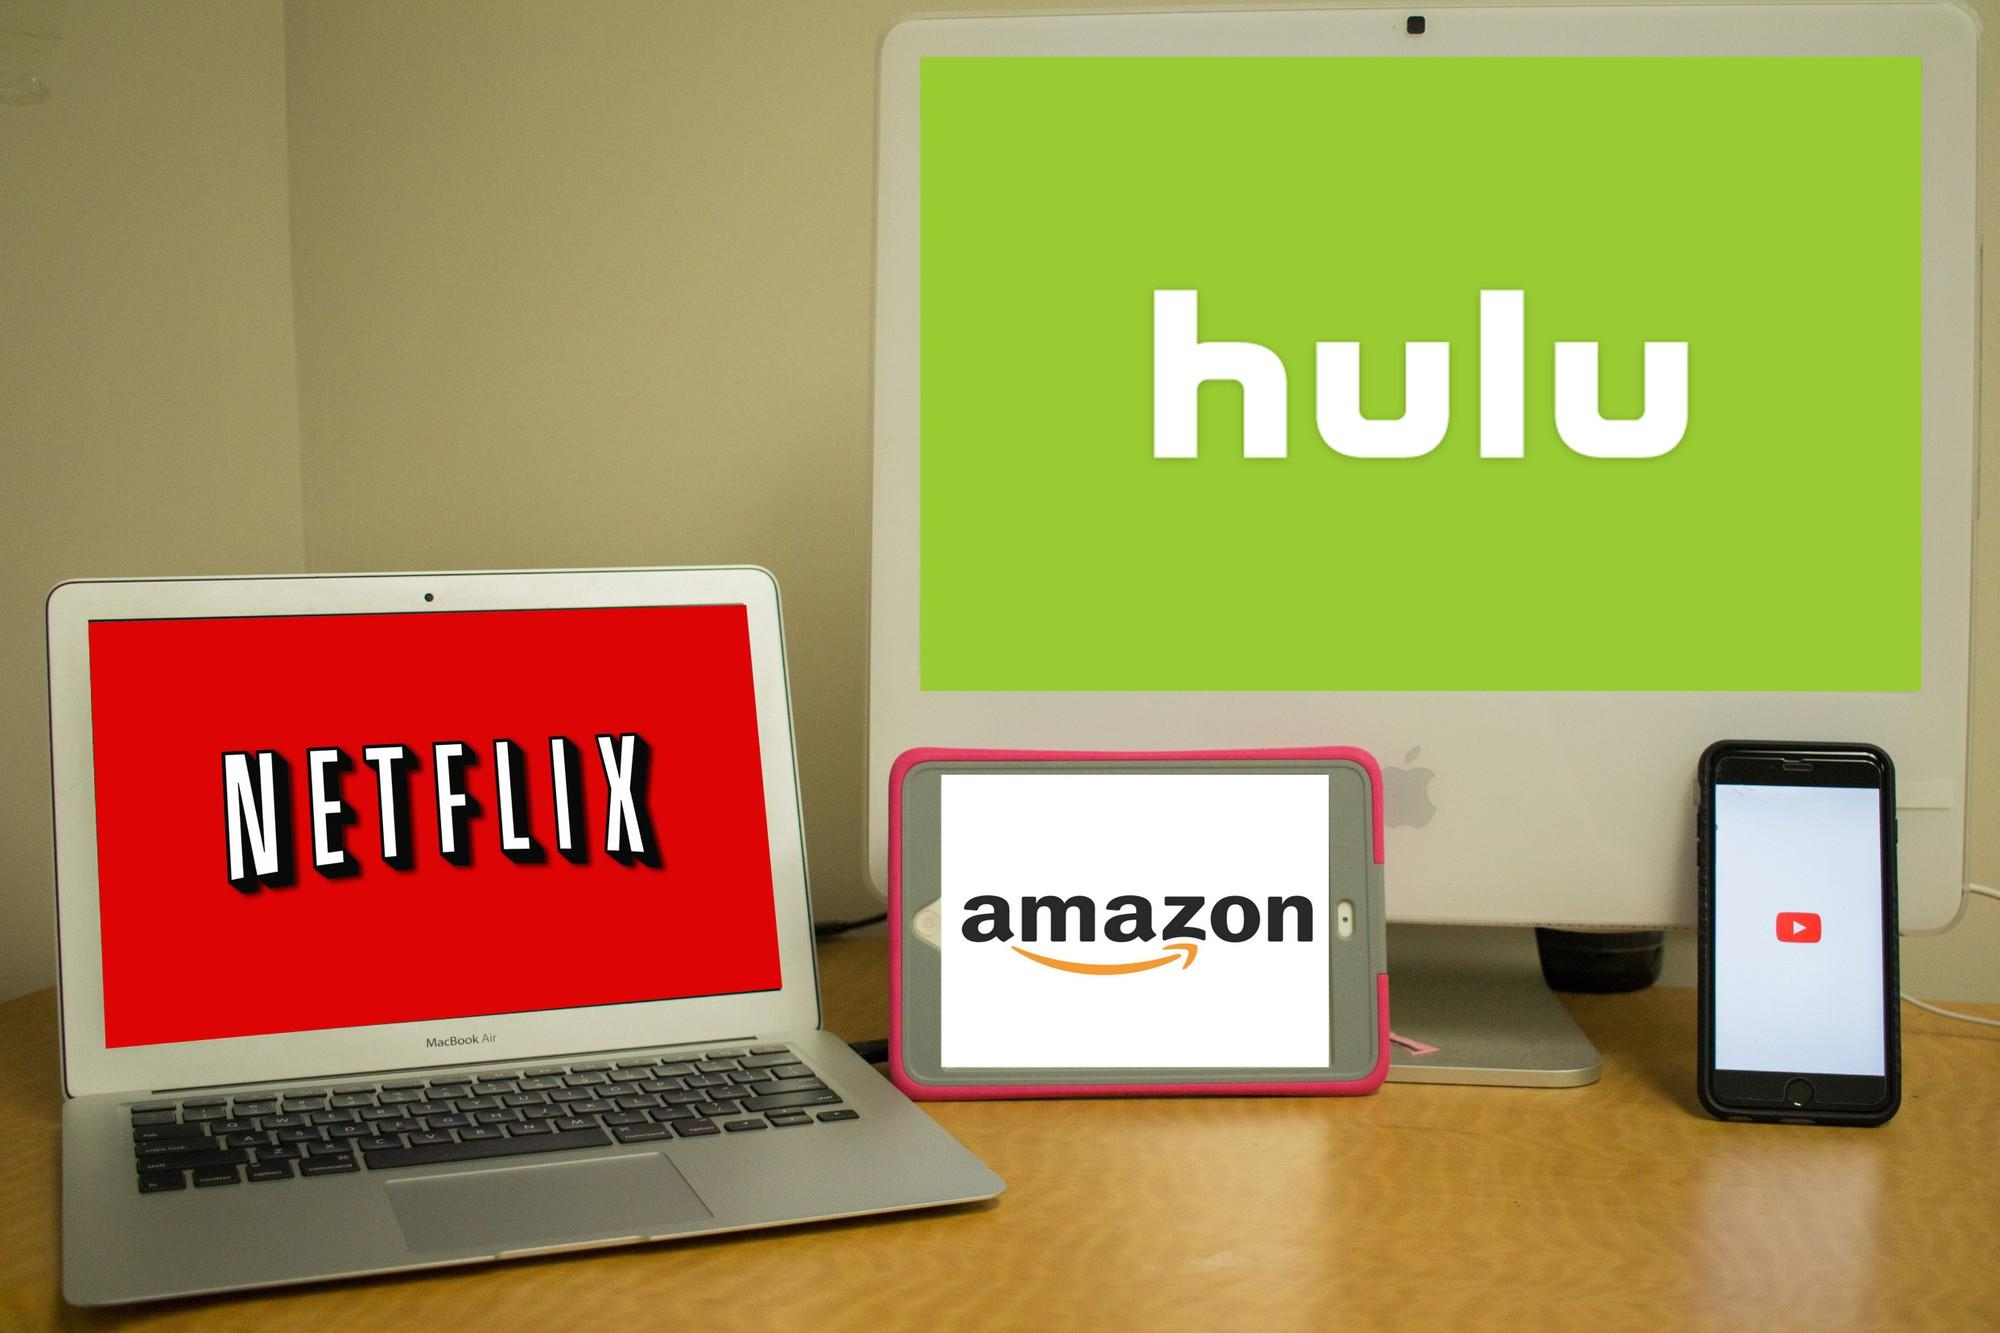 Many people have left regular TV programming and now choose online streaming services such as Amazon Instant Video, Hulu, Netflix, and YouTube.